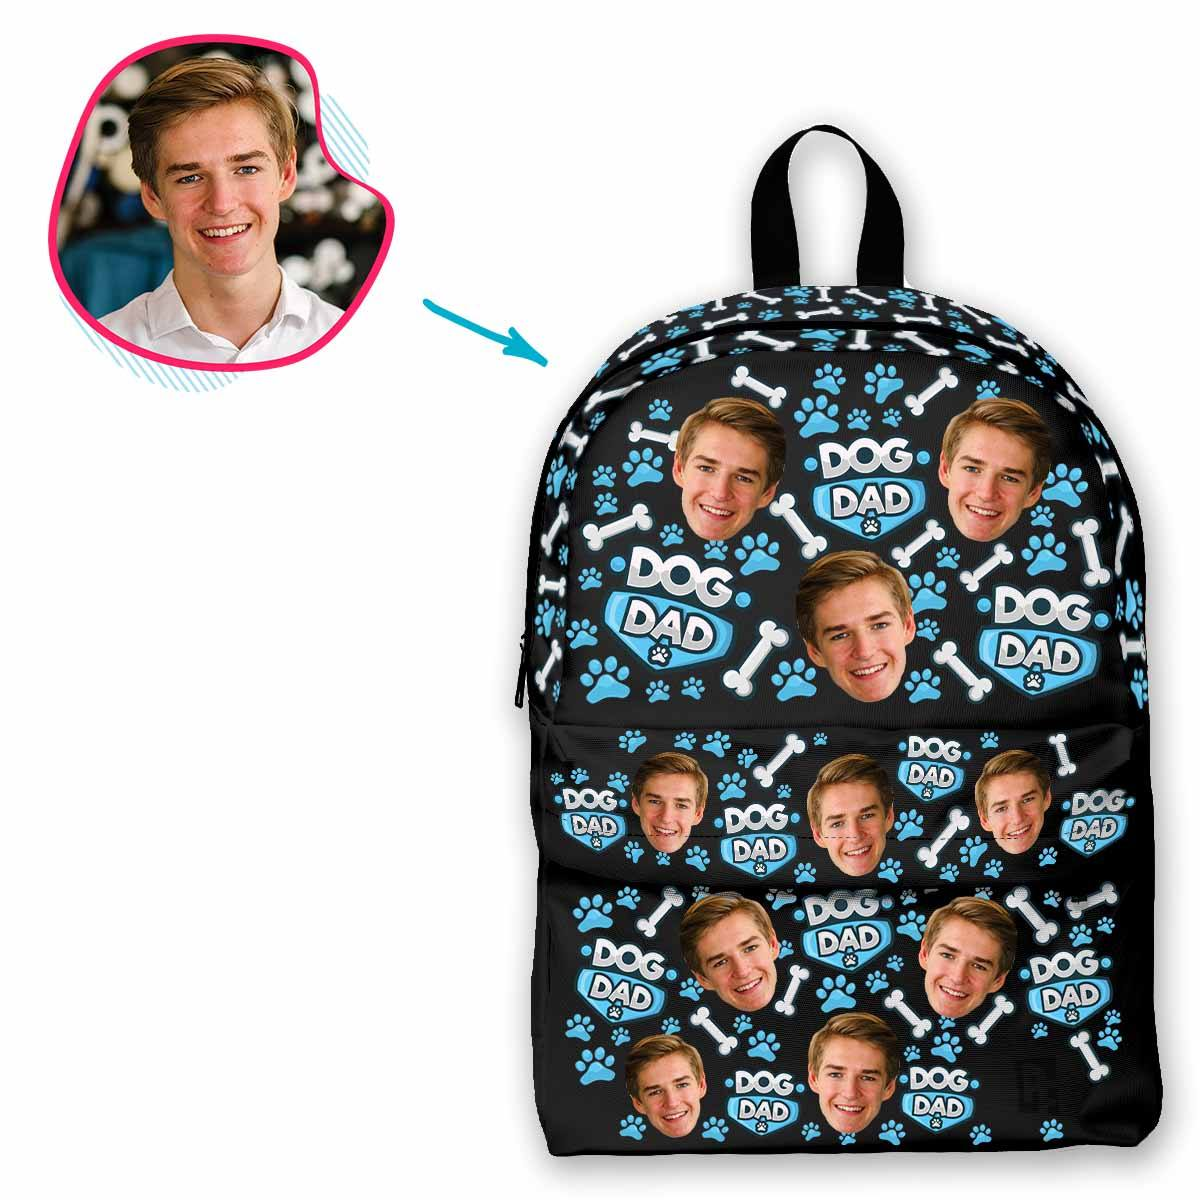 dark Dog Dad classic backpack personalized with photo of face printed on it